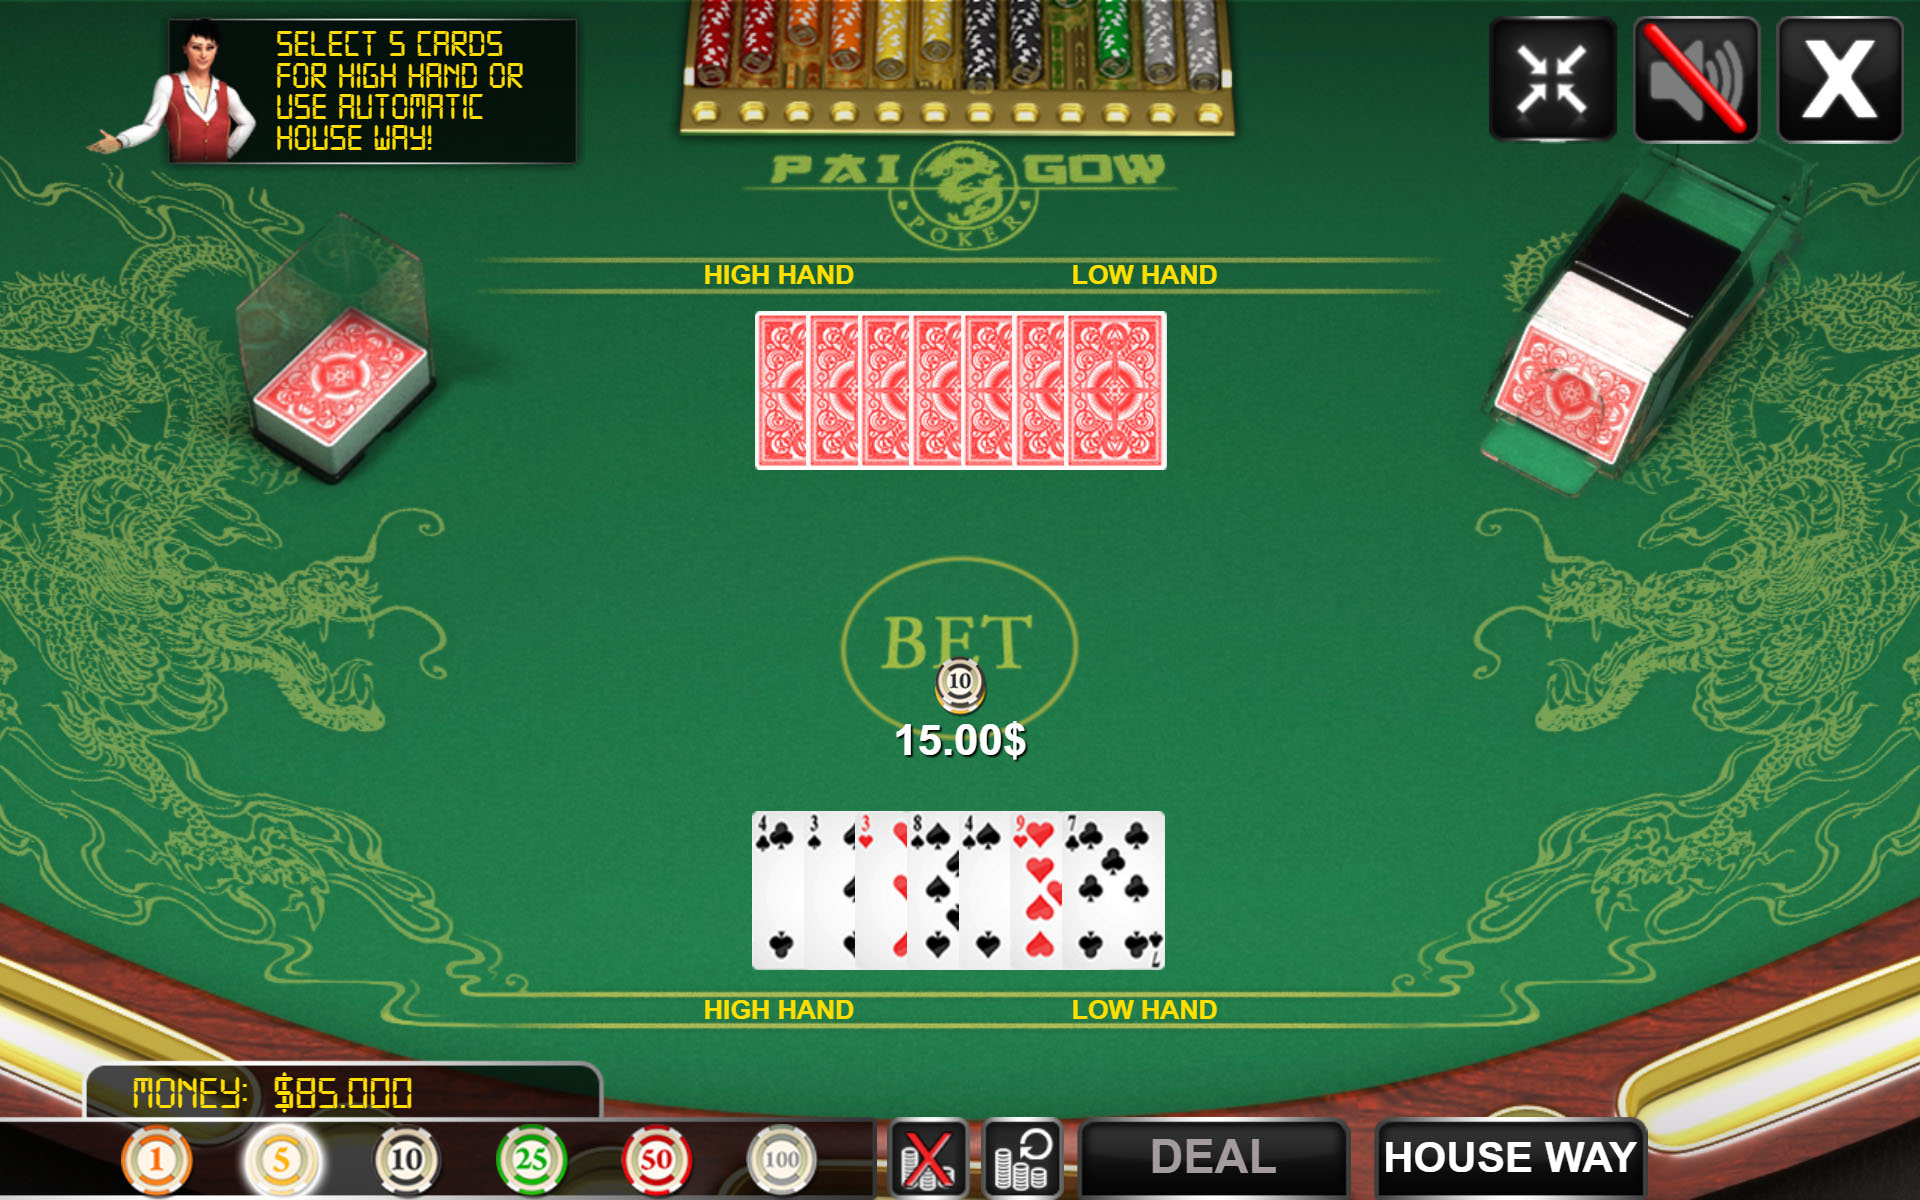 Free casino games i can download